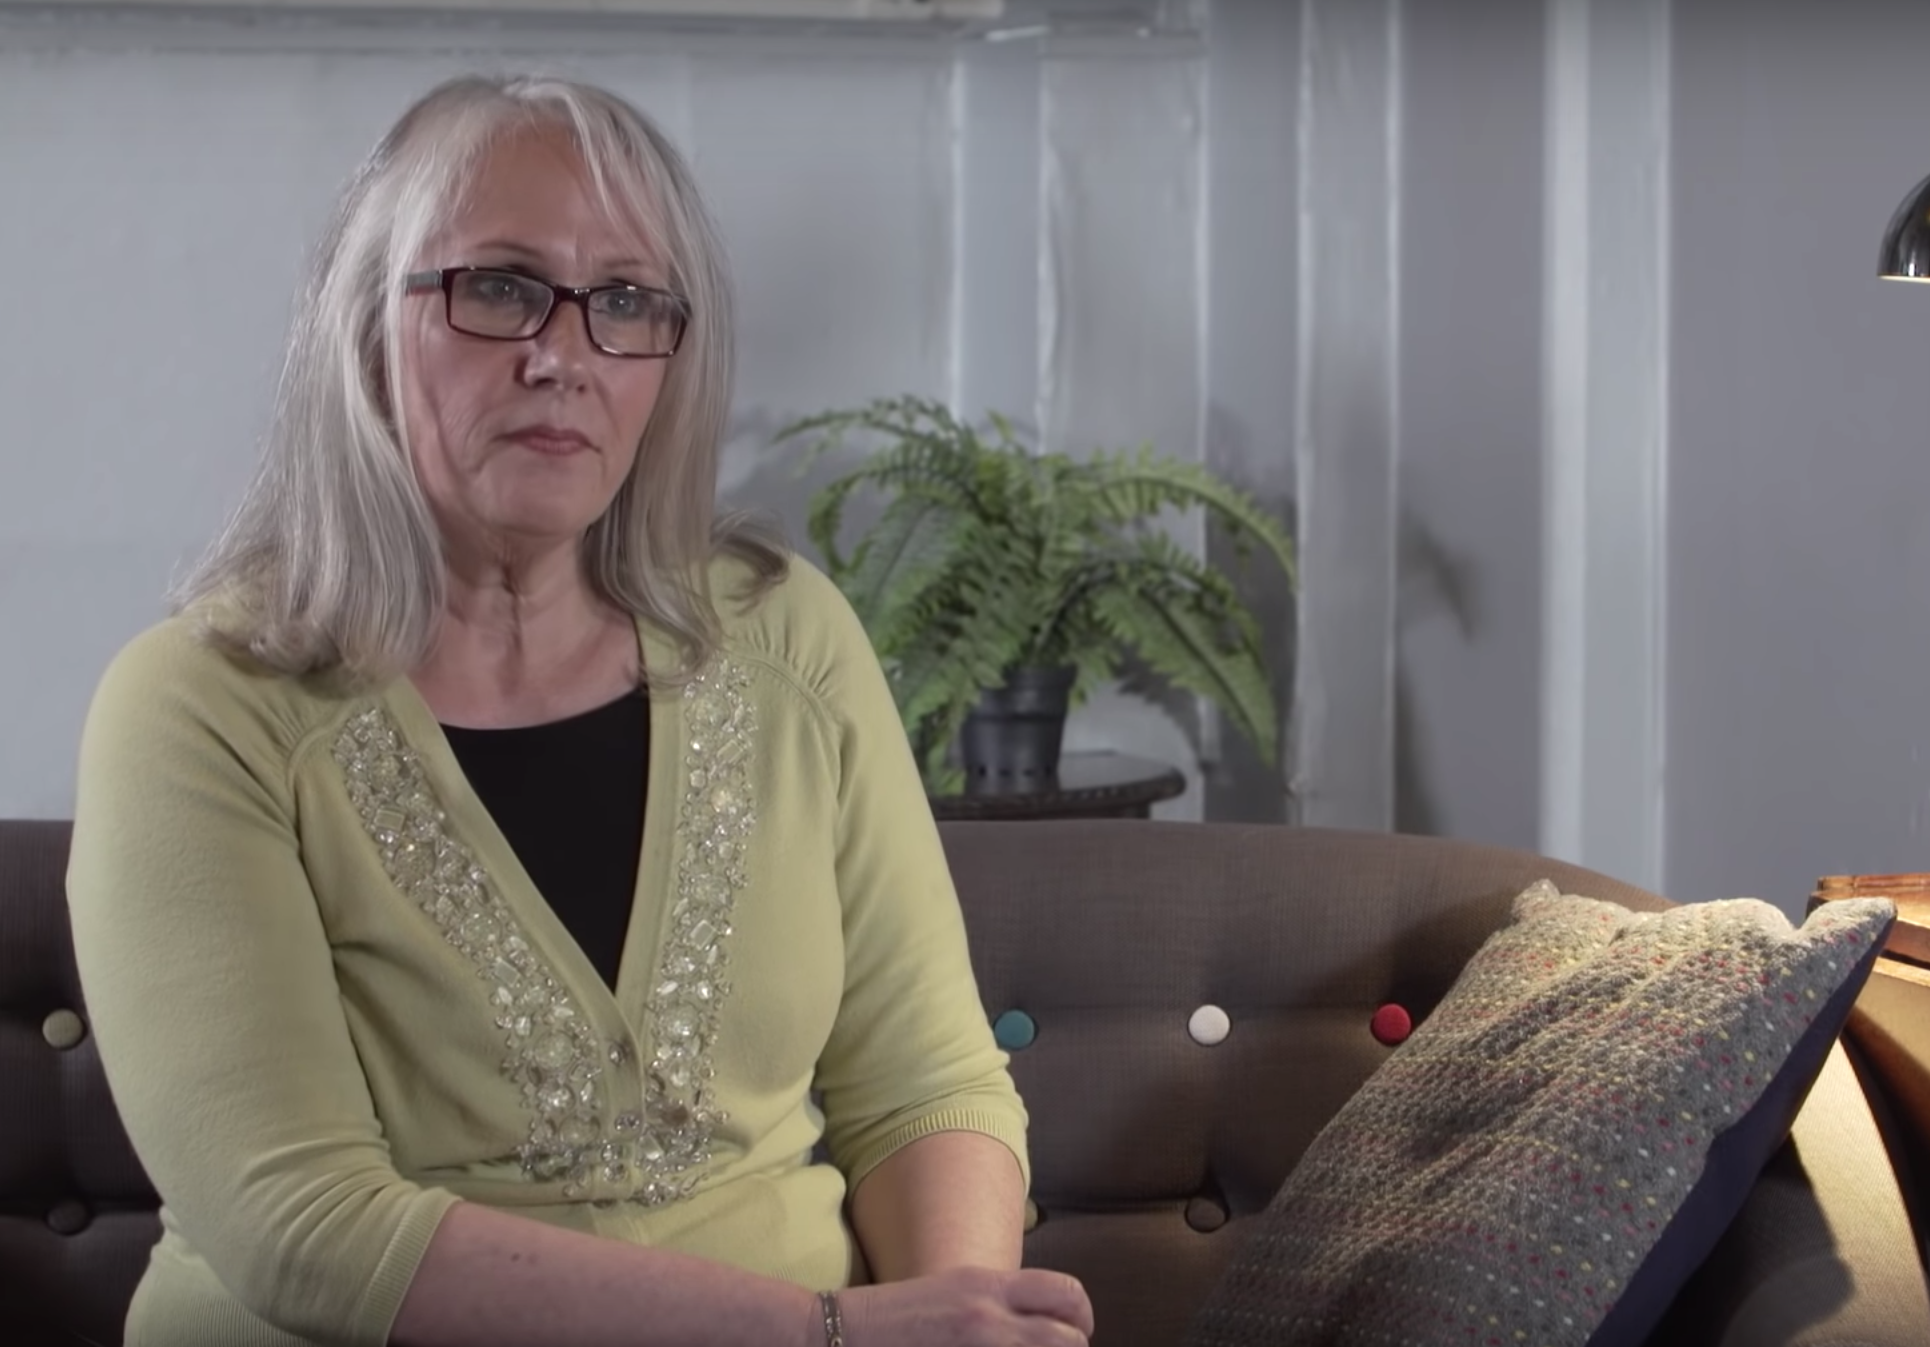 Joanne Welch, director of the BackTo60 campaign, answers EachOther's big questions.